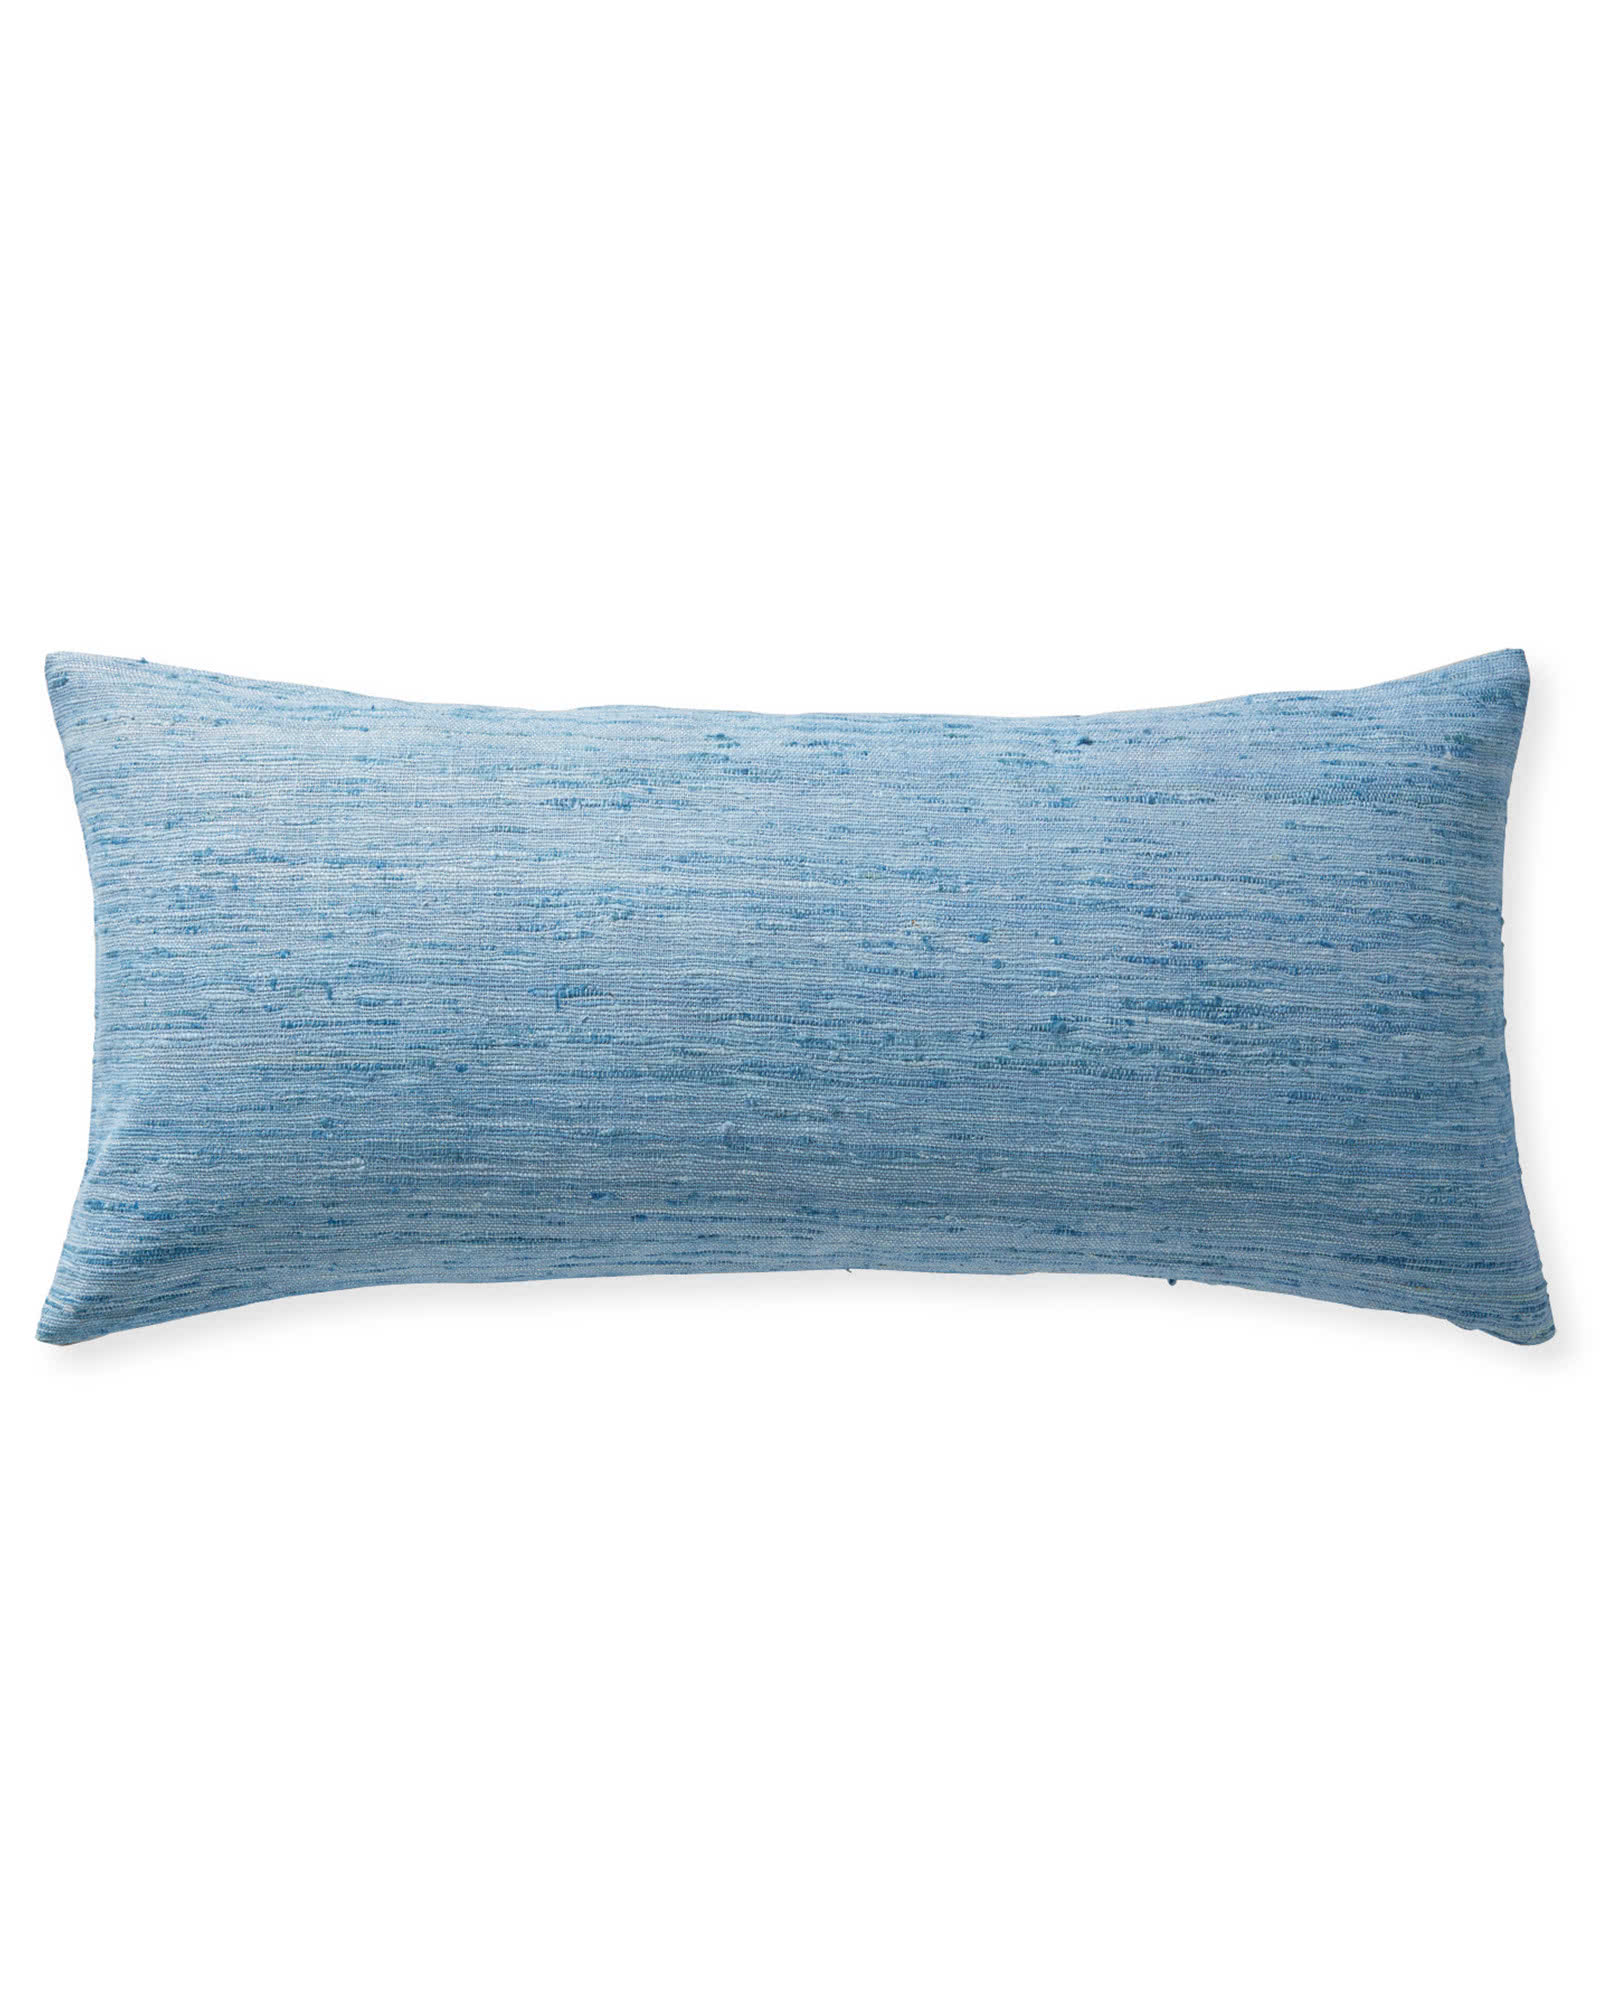 Provence Pillow Cover Serena Amp Lily